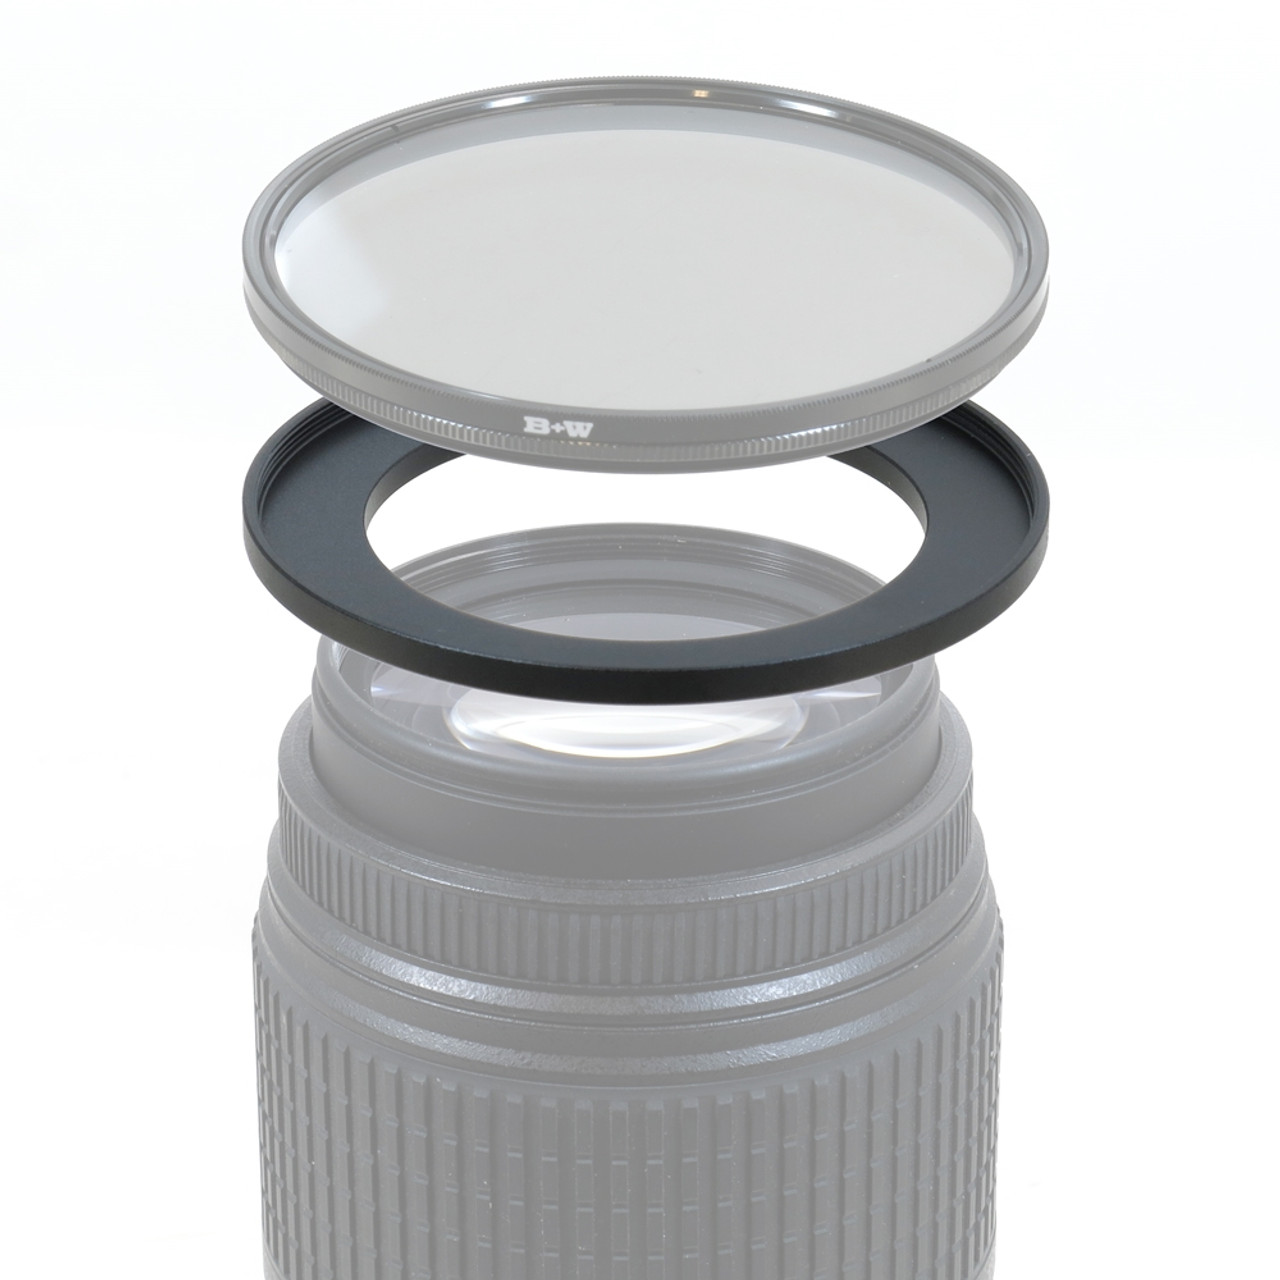 FILTER STEP-UP ADAPTER RINGS